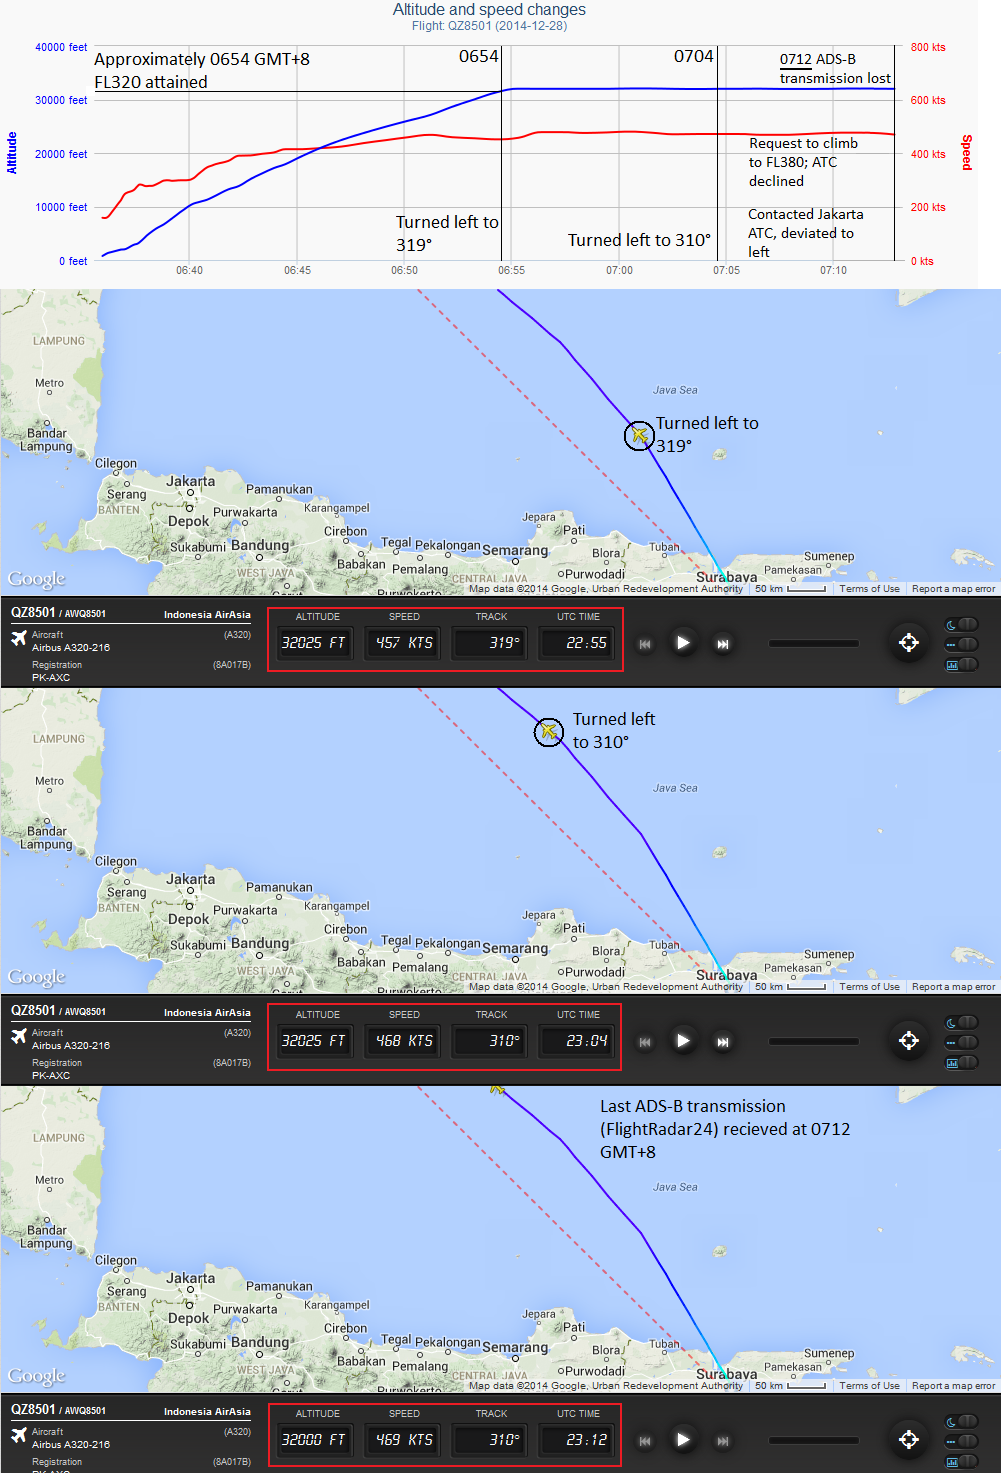 Transcript of events culminating to the radio silence and subsequent disappearance of Flight QZ8501.  Data via FlightRadar24, maps via Google